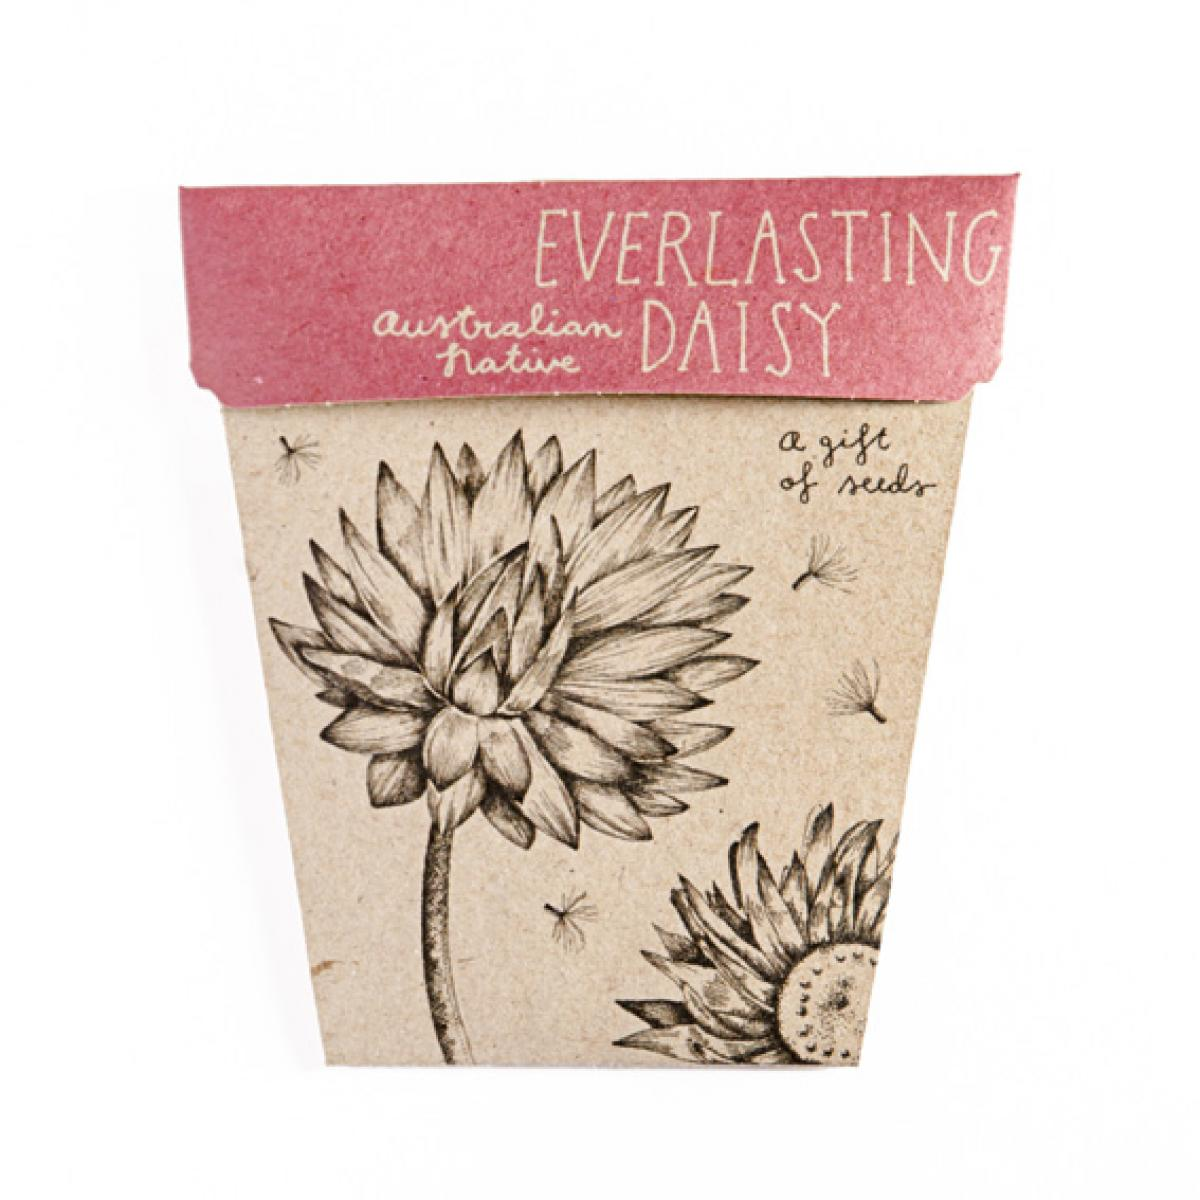 Sow 'n Sow Gift Card with Seeds - Everlasting Daisy - Gift of Seeds - Throw Some Seeds - Australian gardening gifts and eco products online!